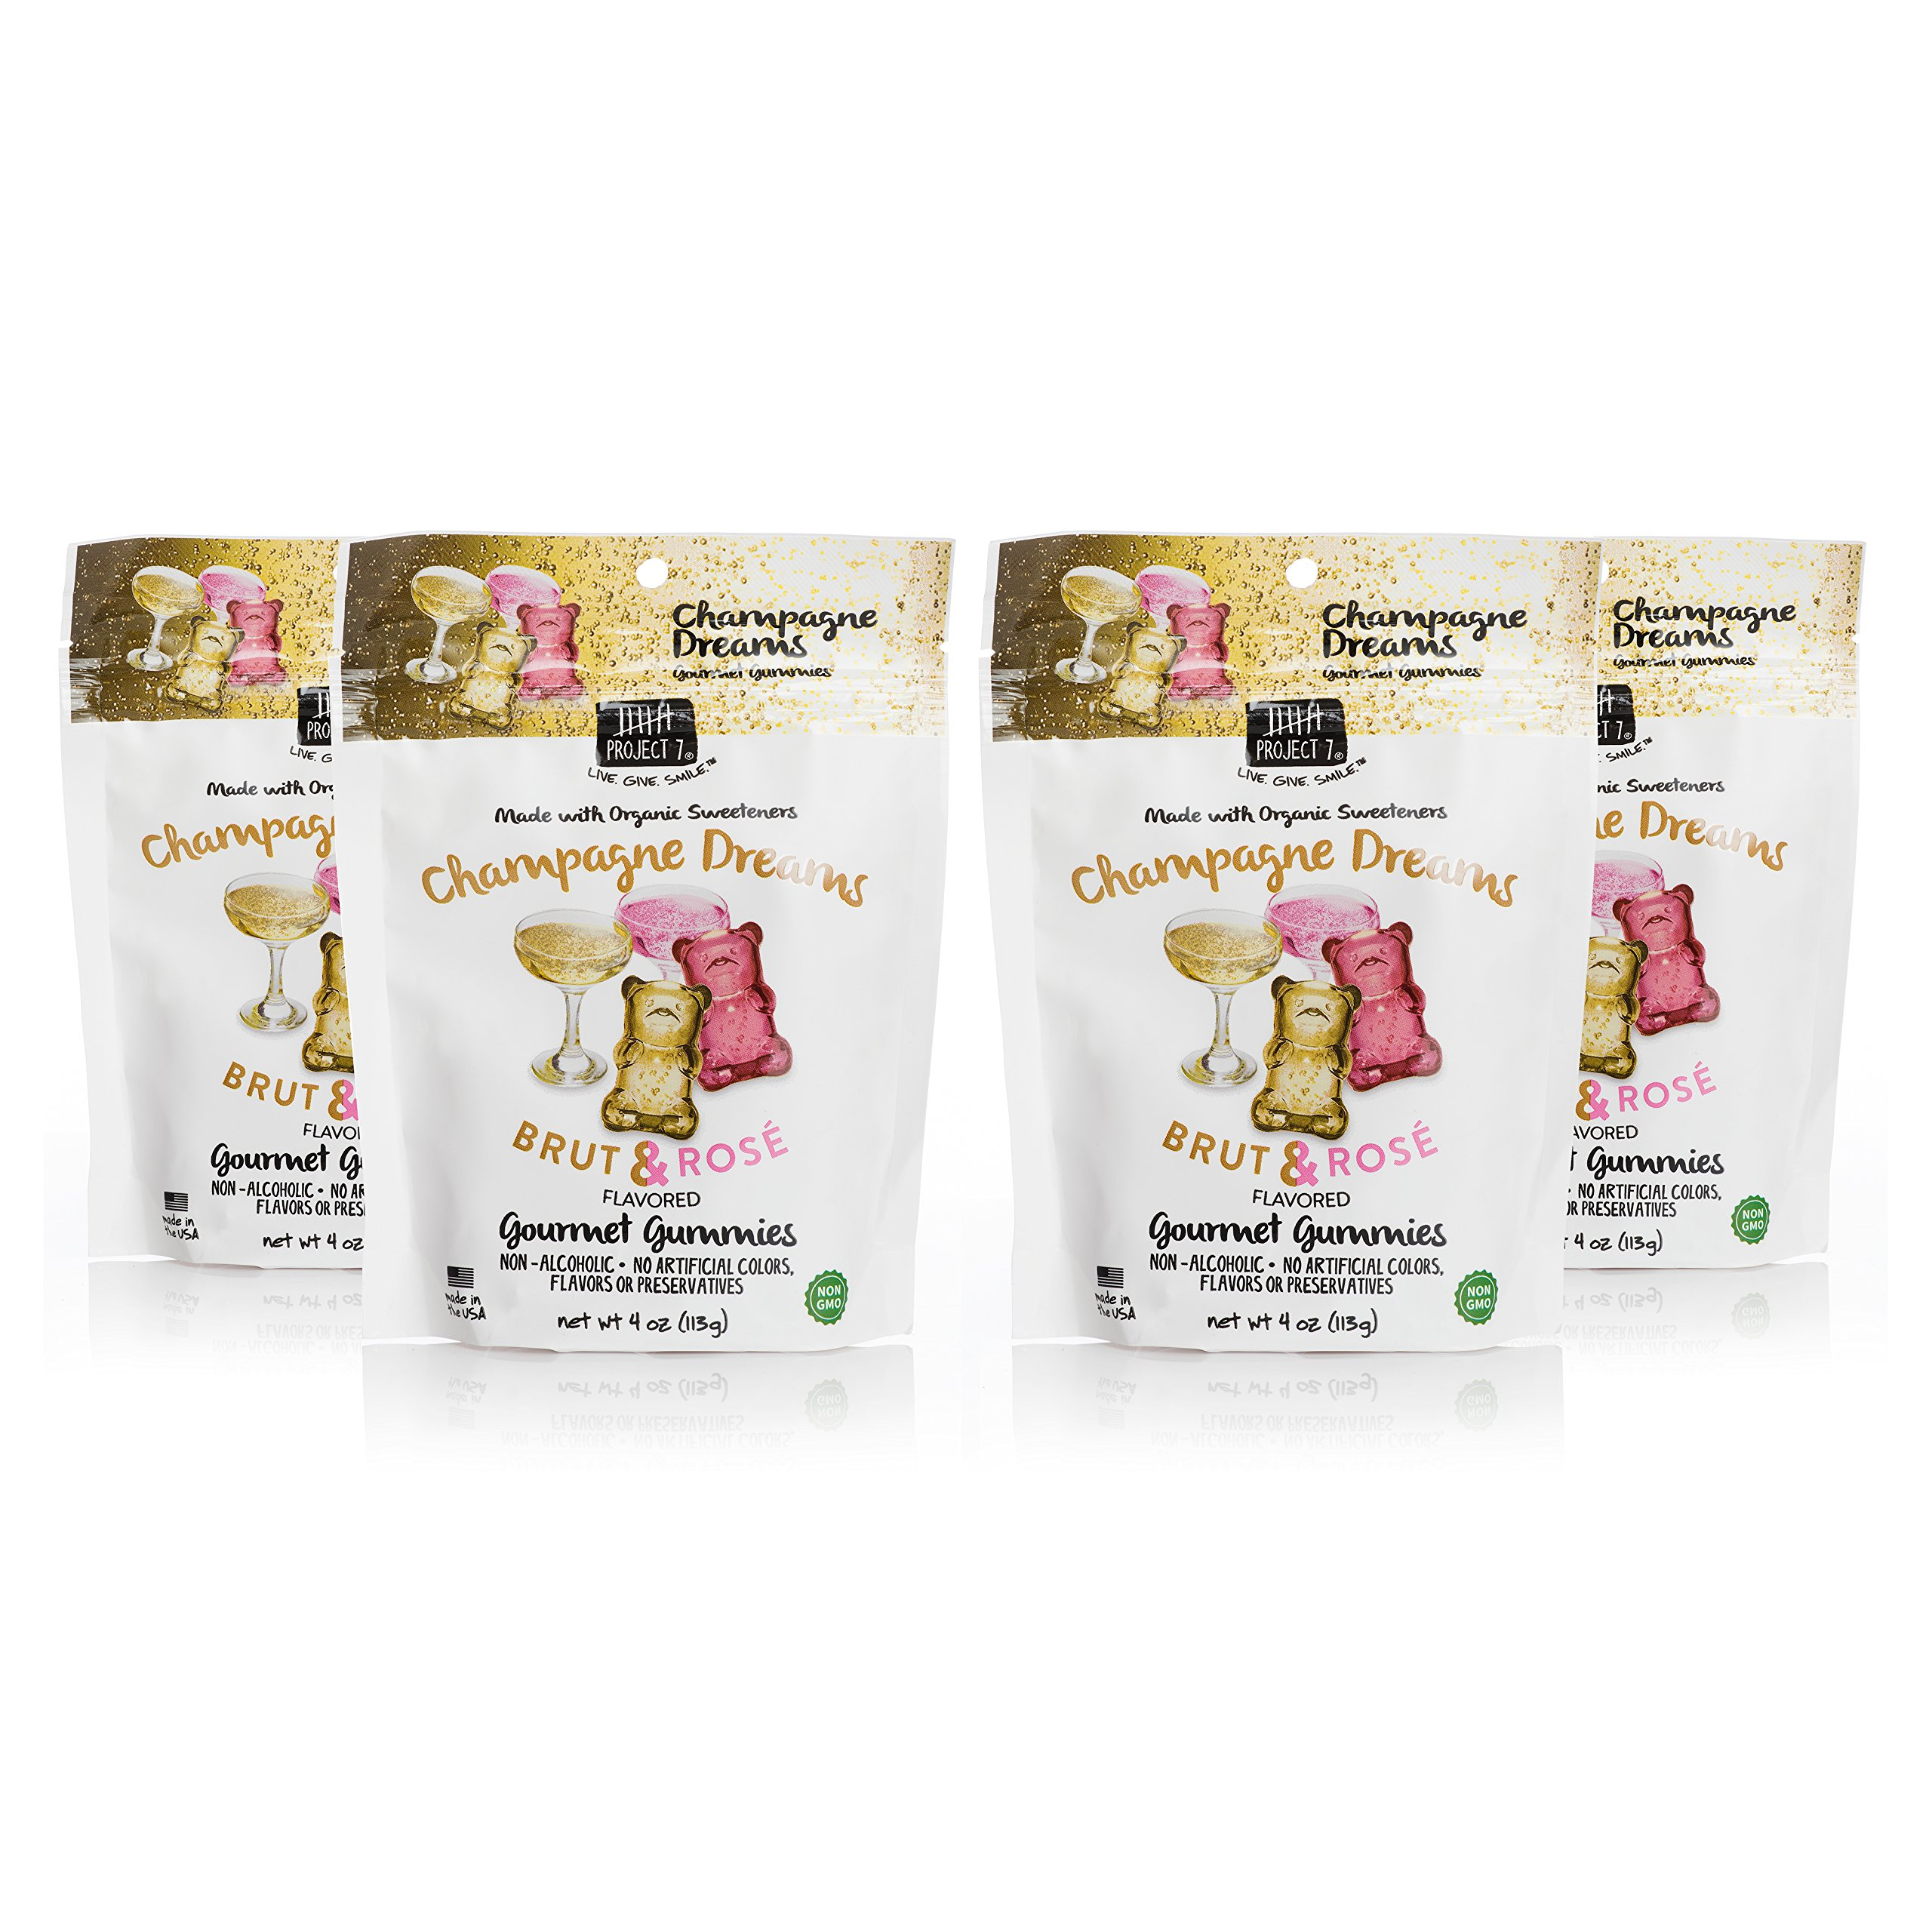 Project 7 Natural Gourmet Gummies in Champagne Dreams, 4 Pack of 4 Ounce Pouches